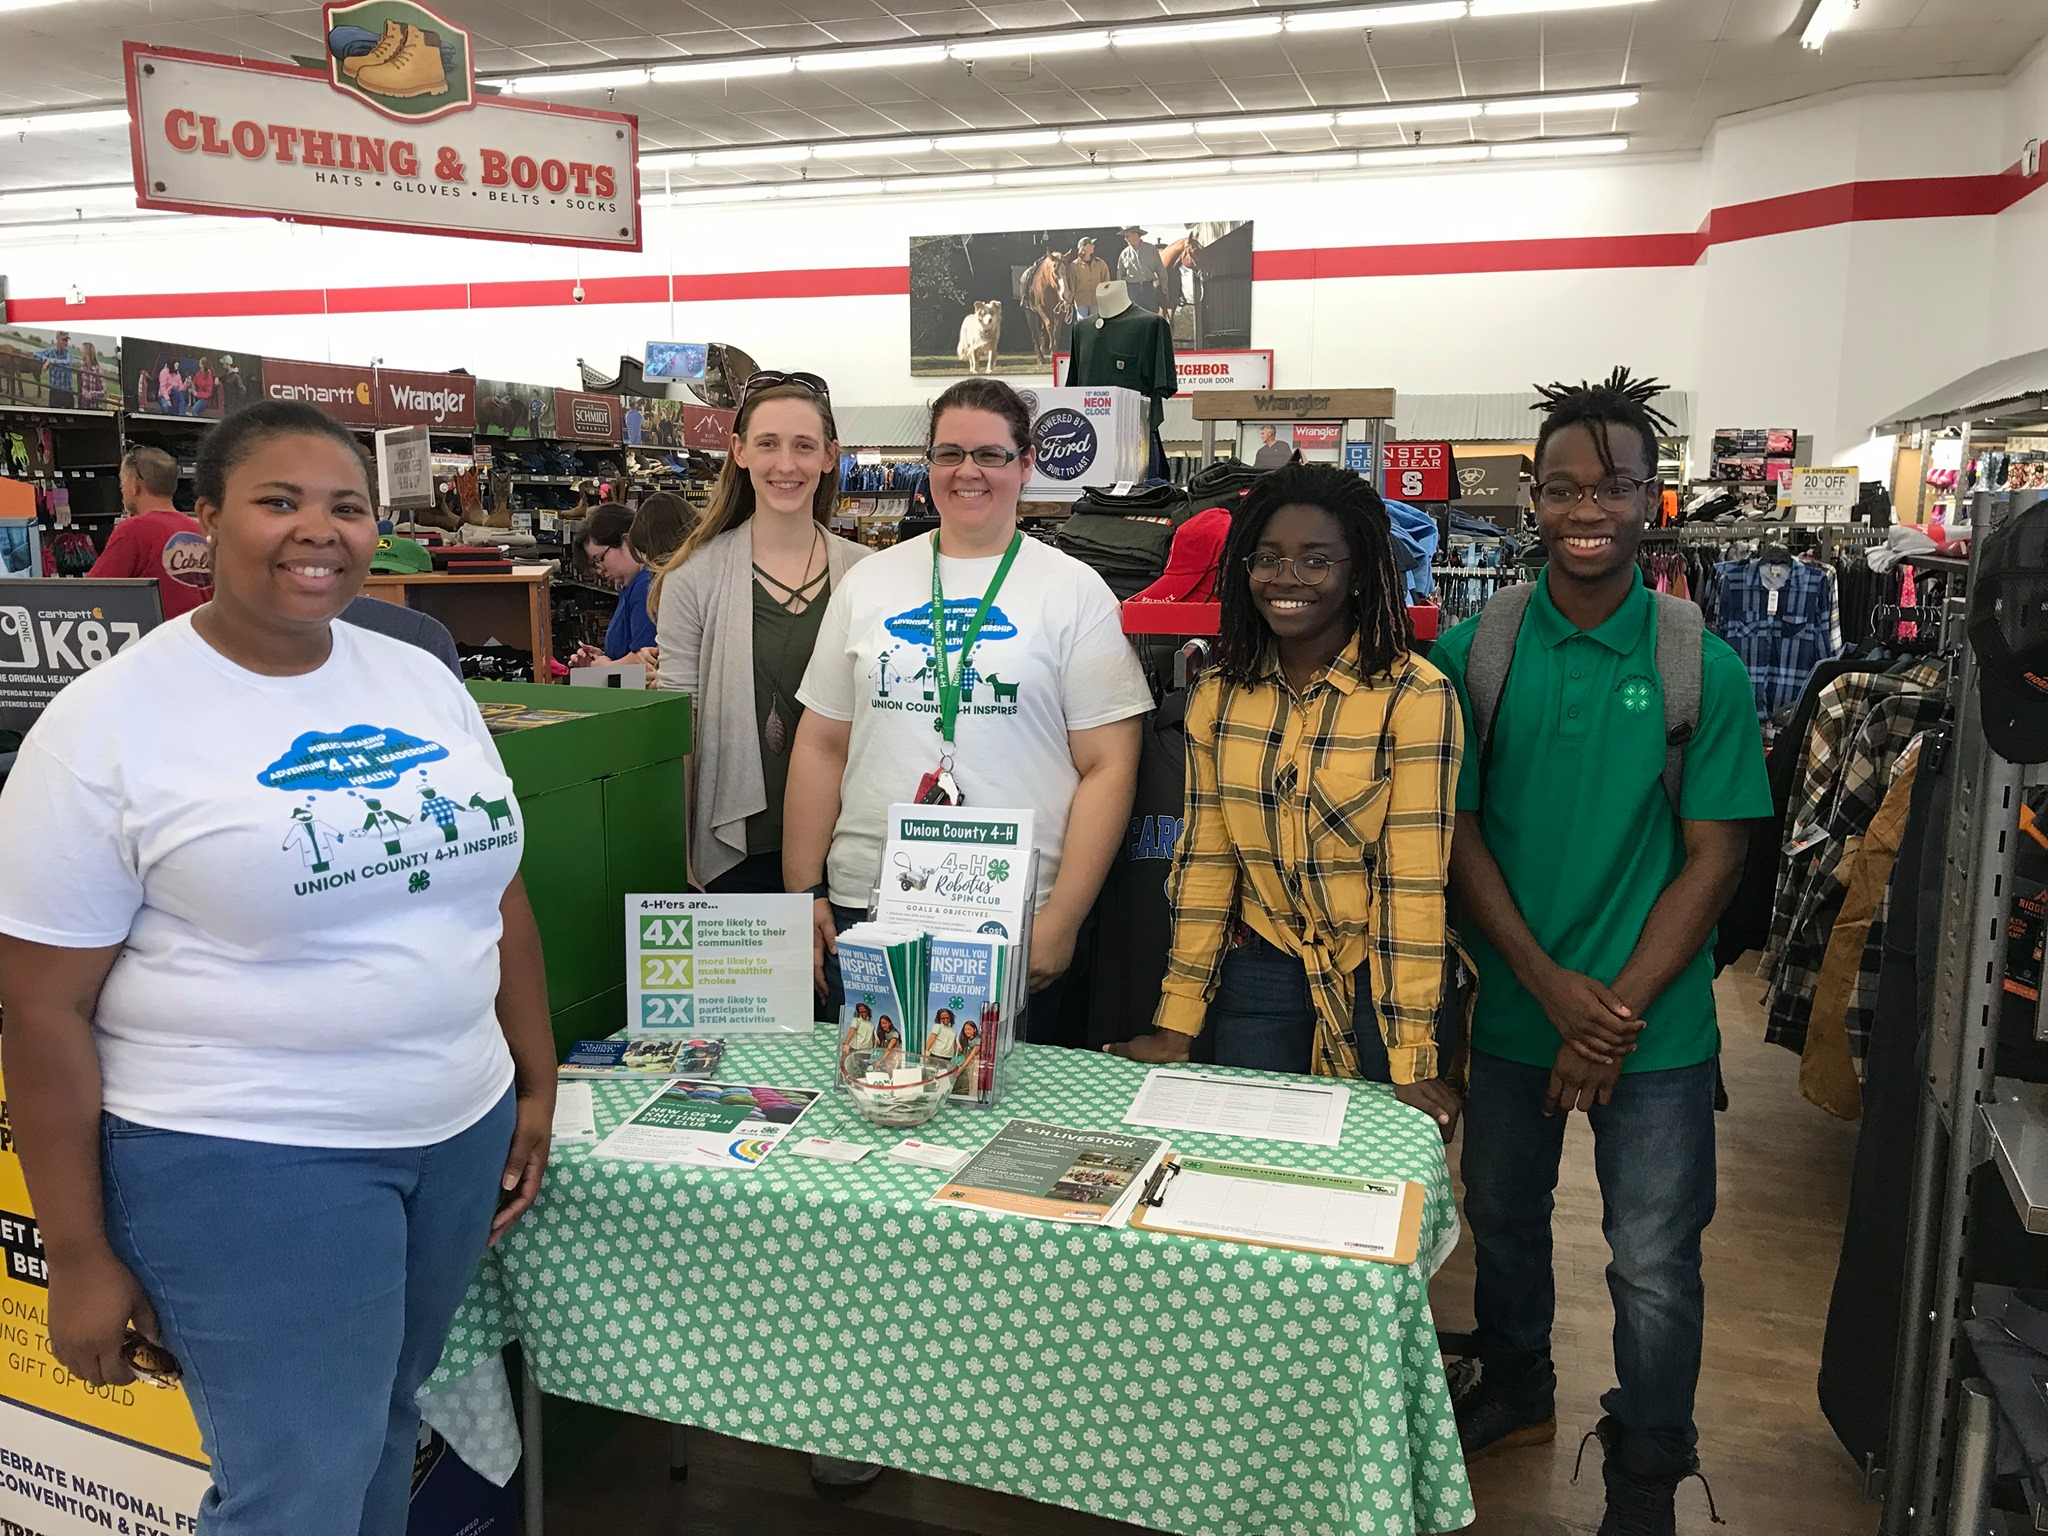 4H staff and members at Tractor Supply for Paper Clover Campaign 2019